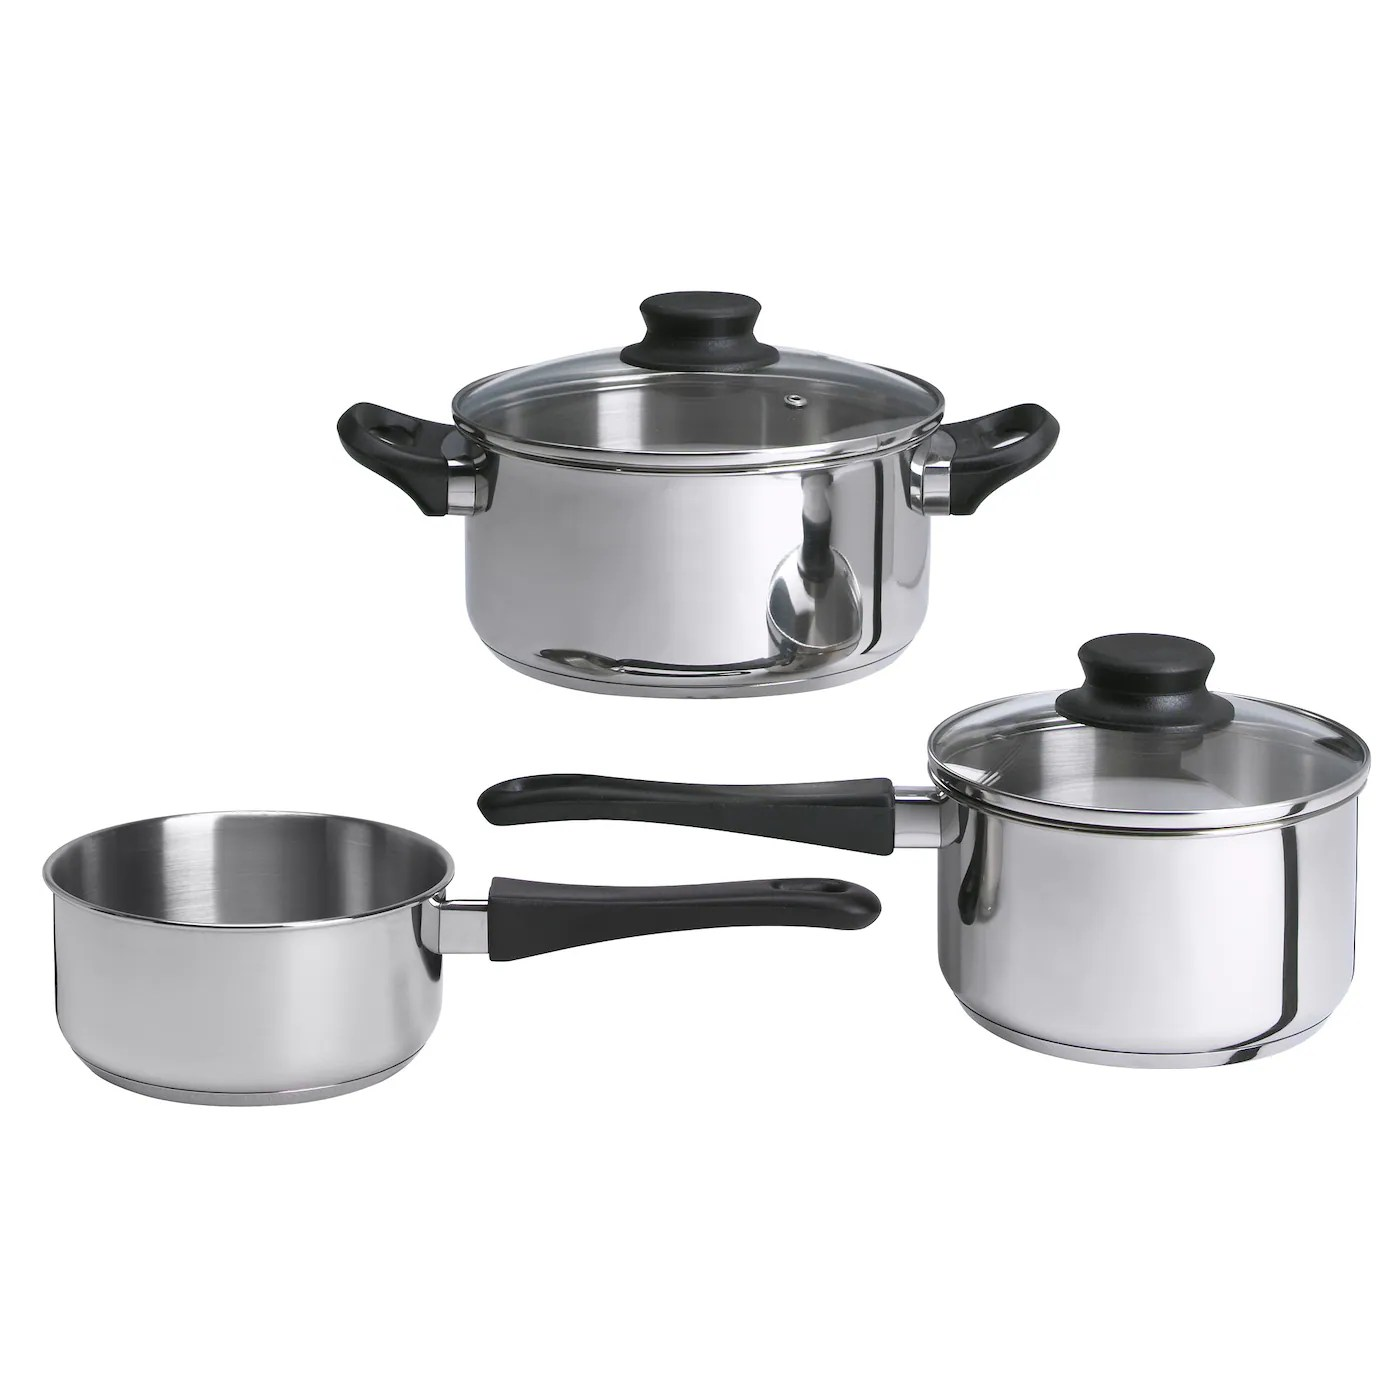 kitchen vessels set oil rubbed bronze sink pots and pans saucepans cooking from ikea ireland annons 5 piece cookware works well on all types of hobs including